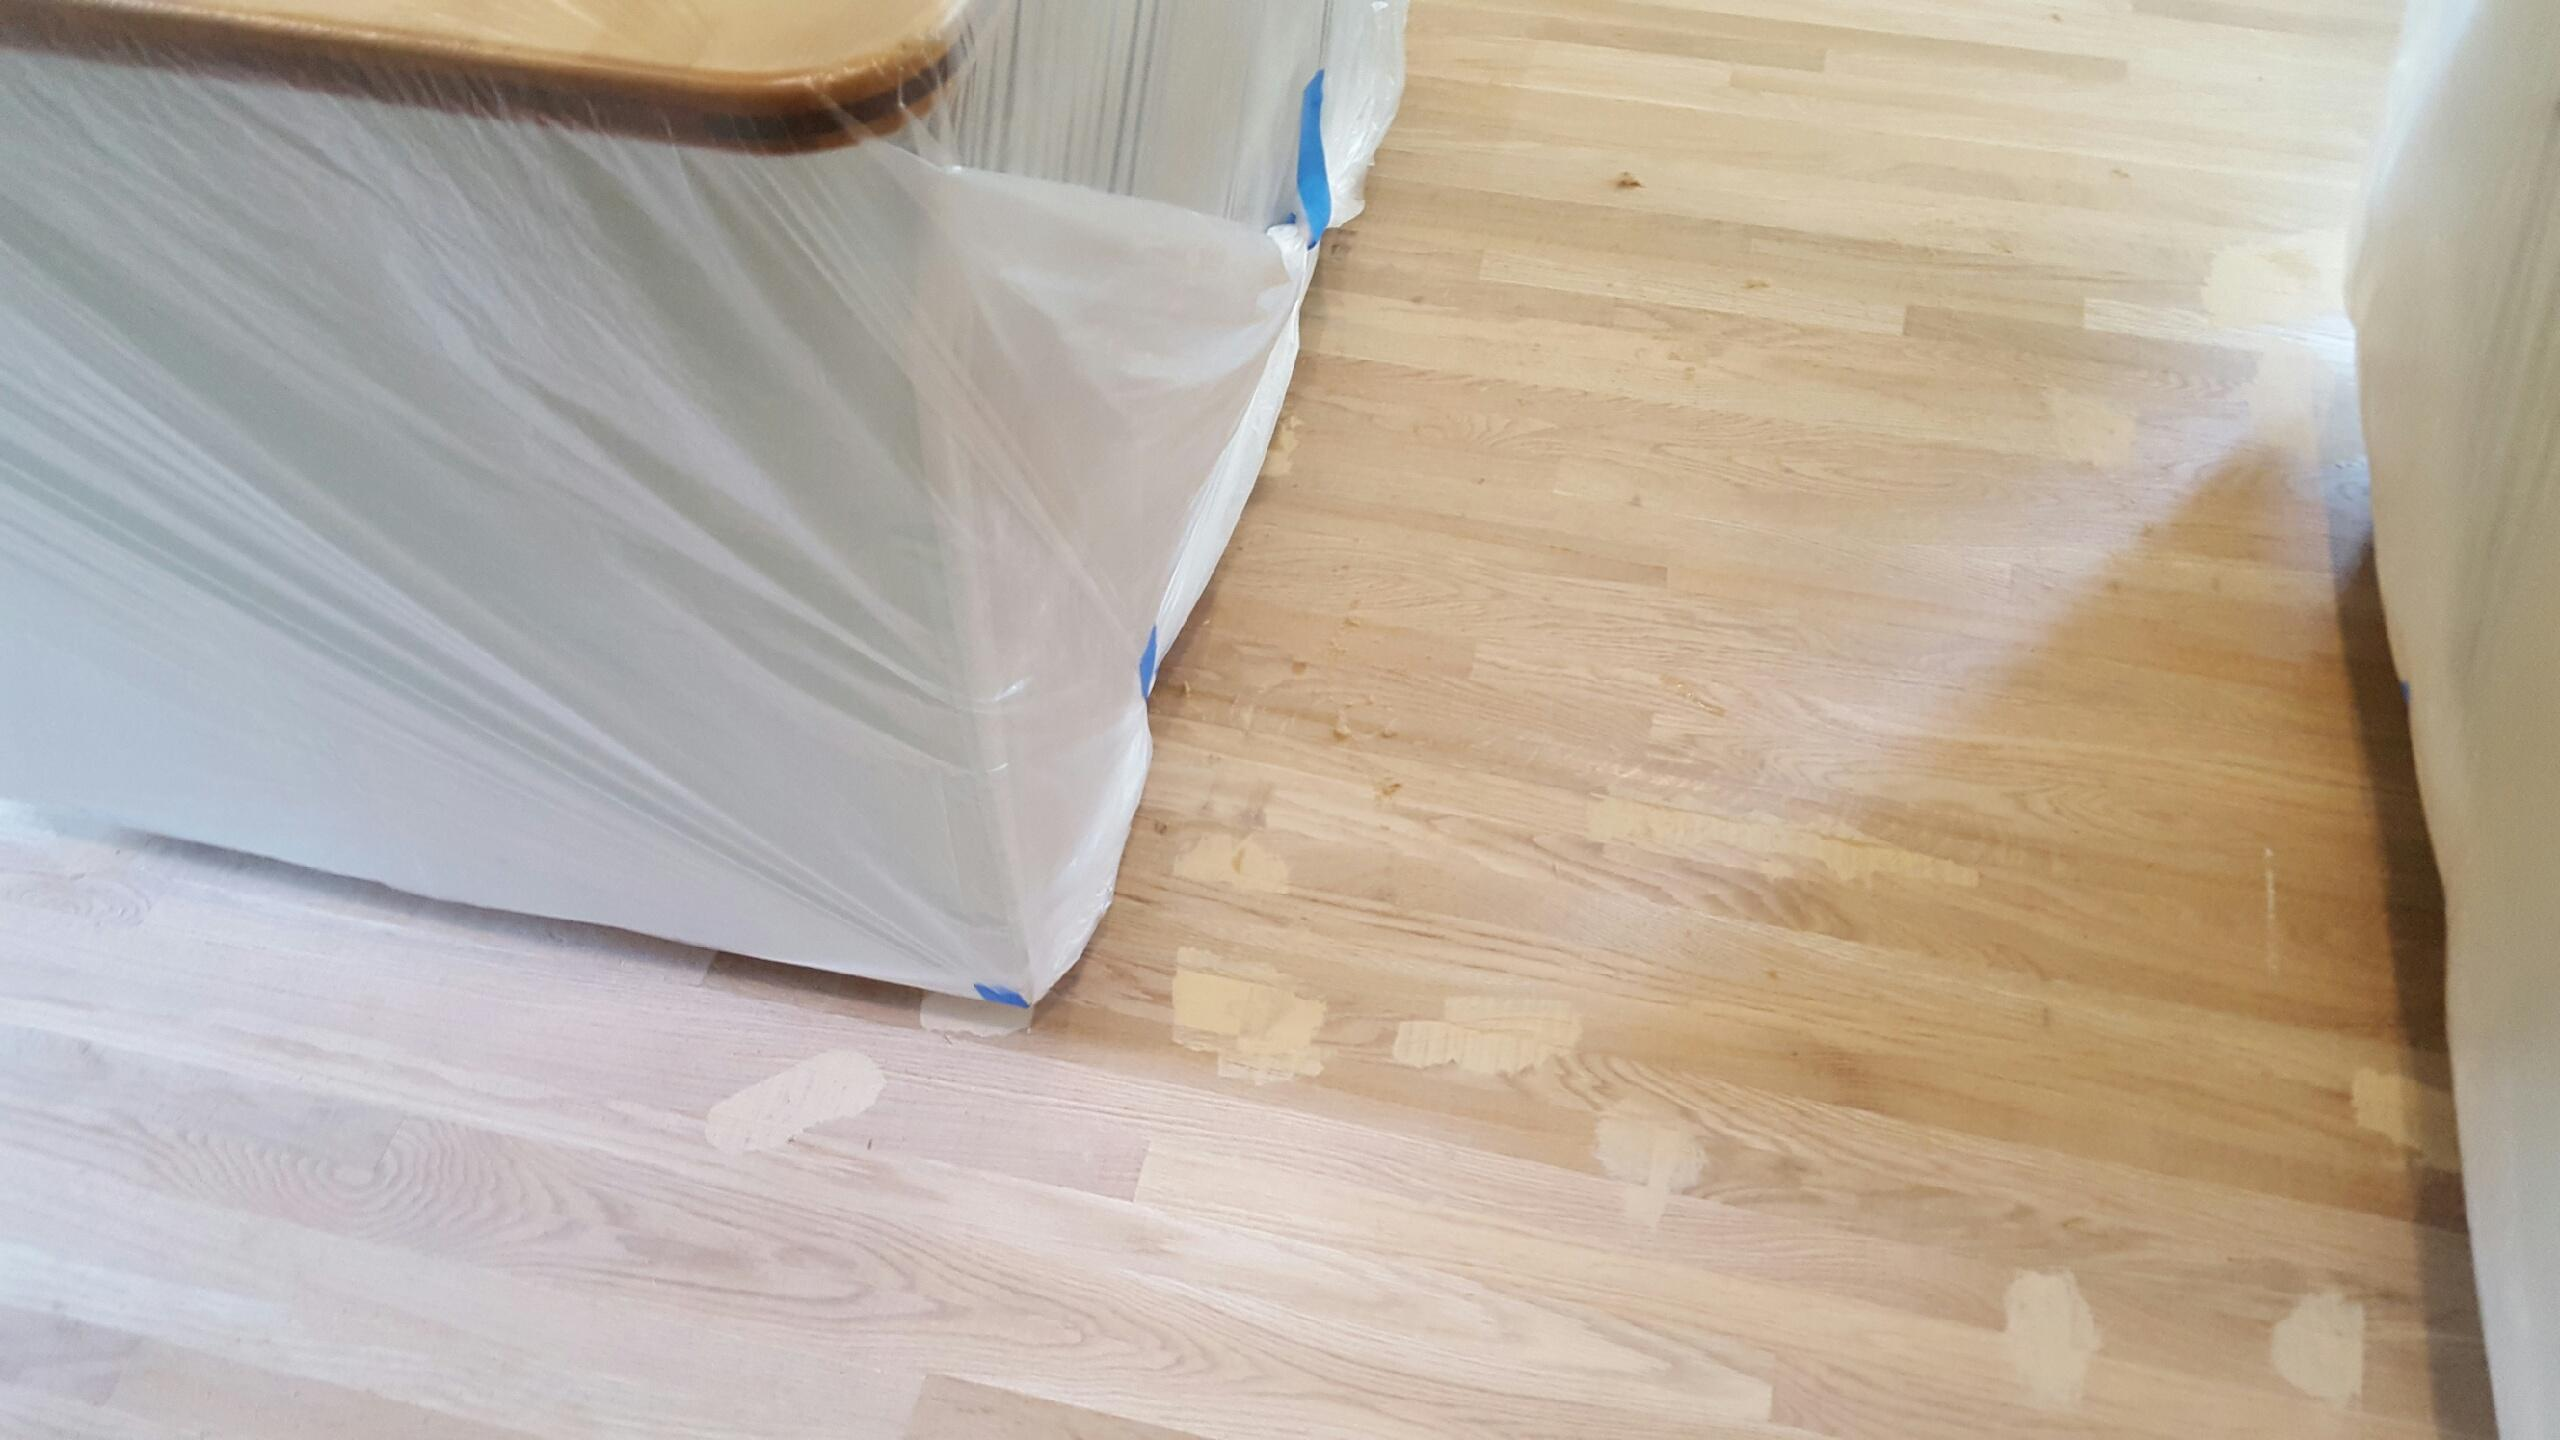 Floors in the kitchen